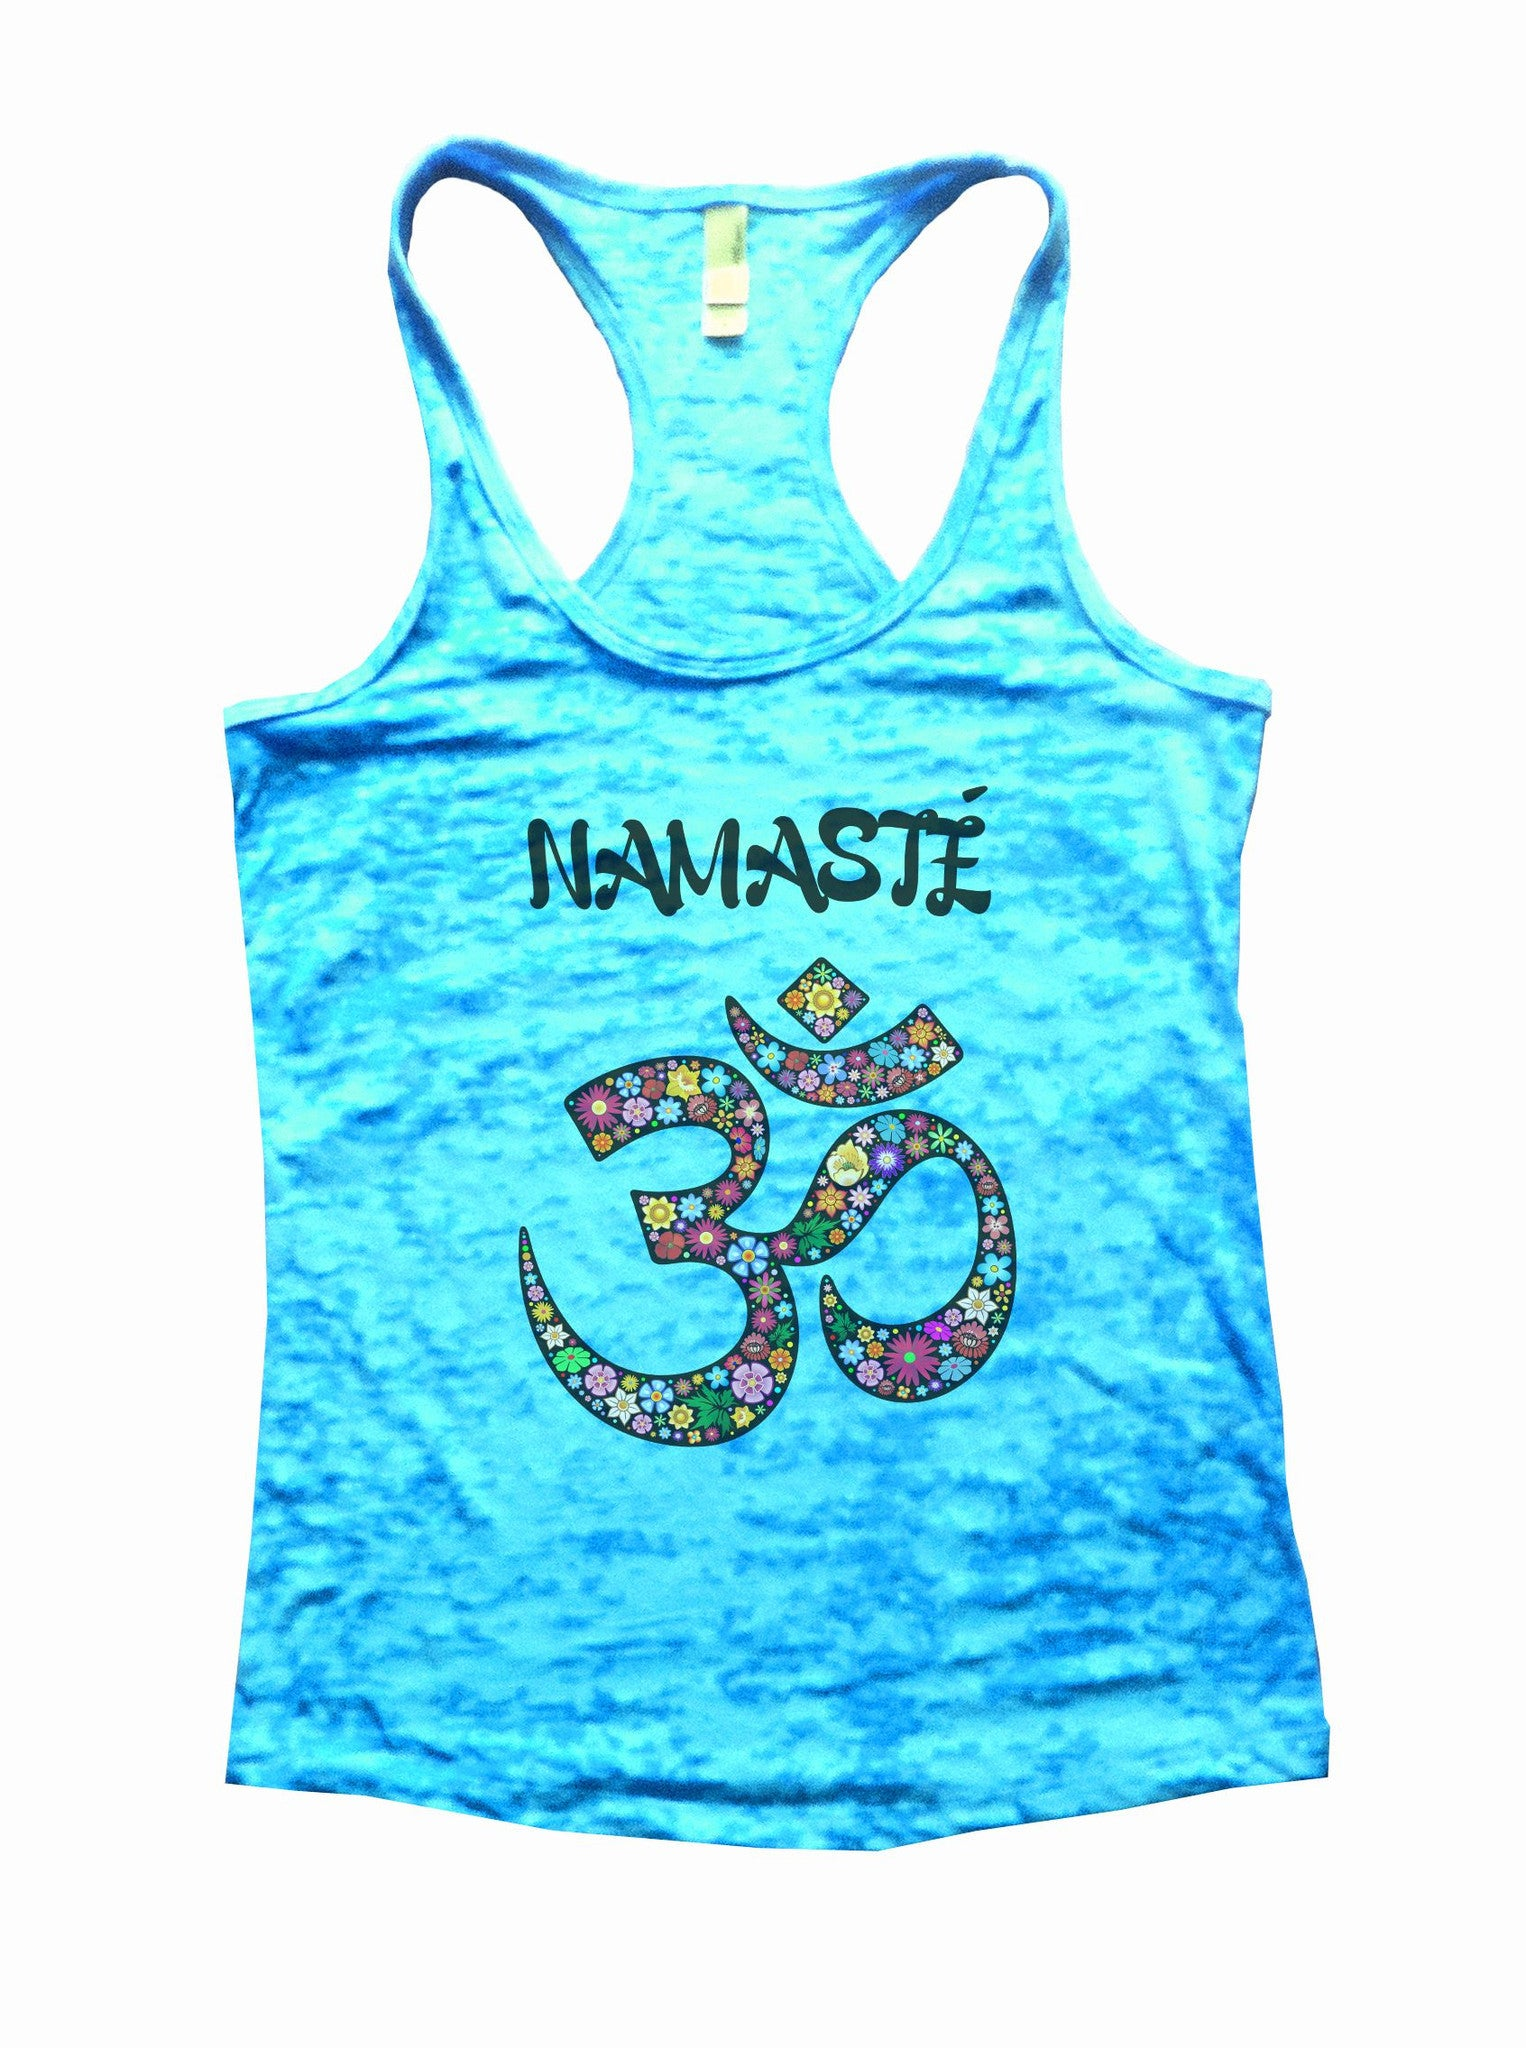 Namaste Burnout Tank Top By BurnoutTankTops.com - 713 - Funny Shirts Tank Tops Burnouts and Triblends  - 1